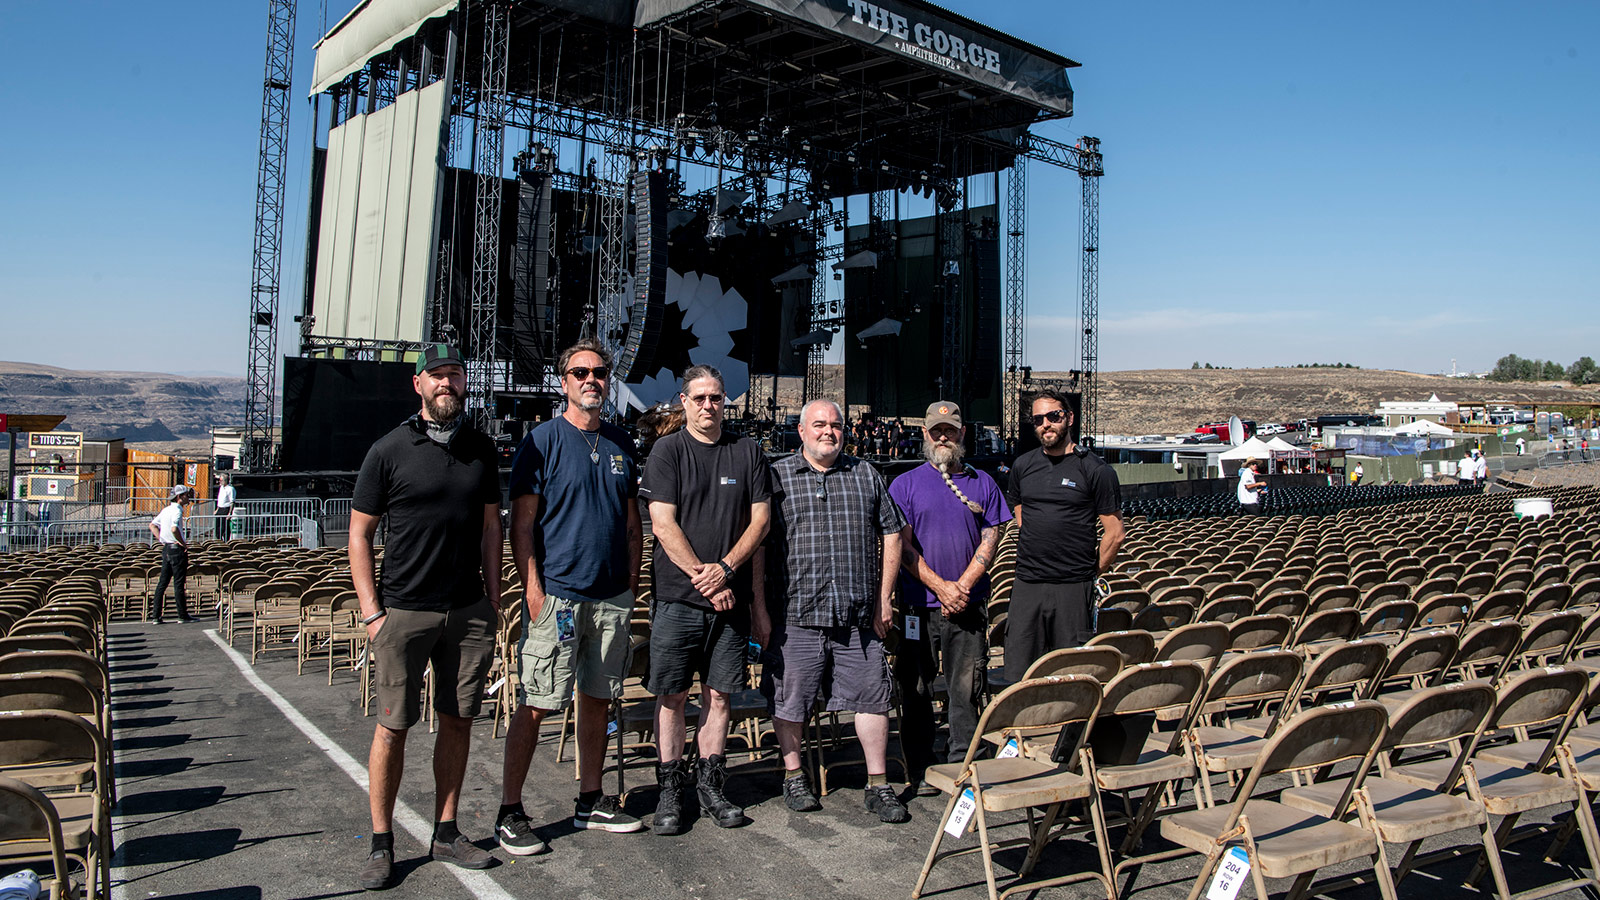 Dave Matthews Band and UltraSound Crew at The Gorge (L-R): Michal Kacunel, Systems Engineer; Joe Lawlor, Recording Tech; Greg Botimer, Monitor Tech; Ian Kuhn, Monitor Engineer; Lonnie Quinn, Monitor System Engineer; Sam Brodsky, PA Tech